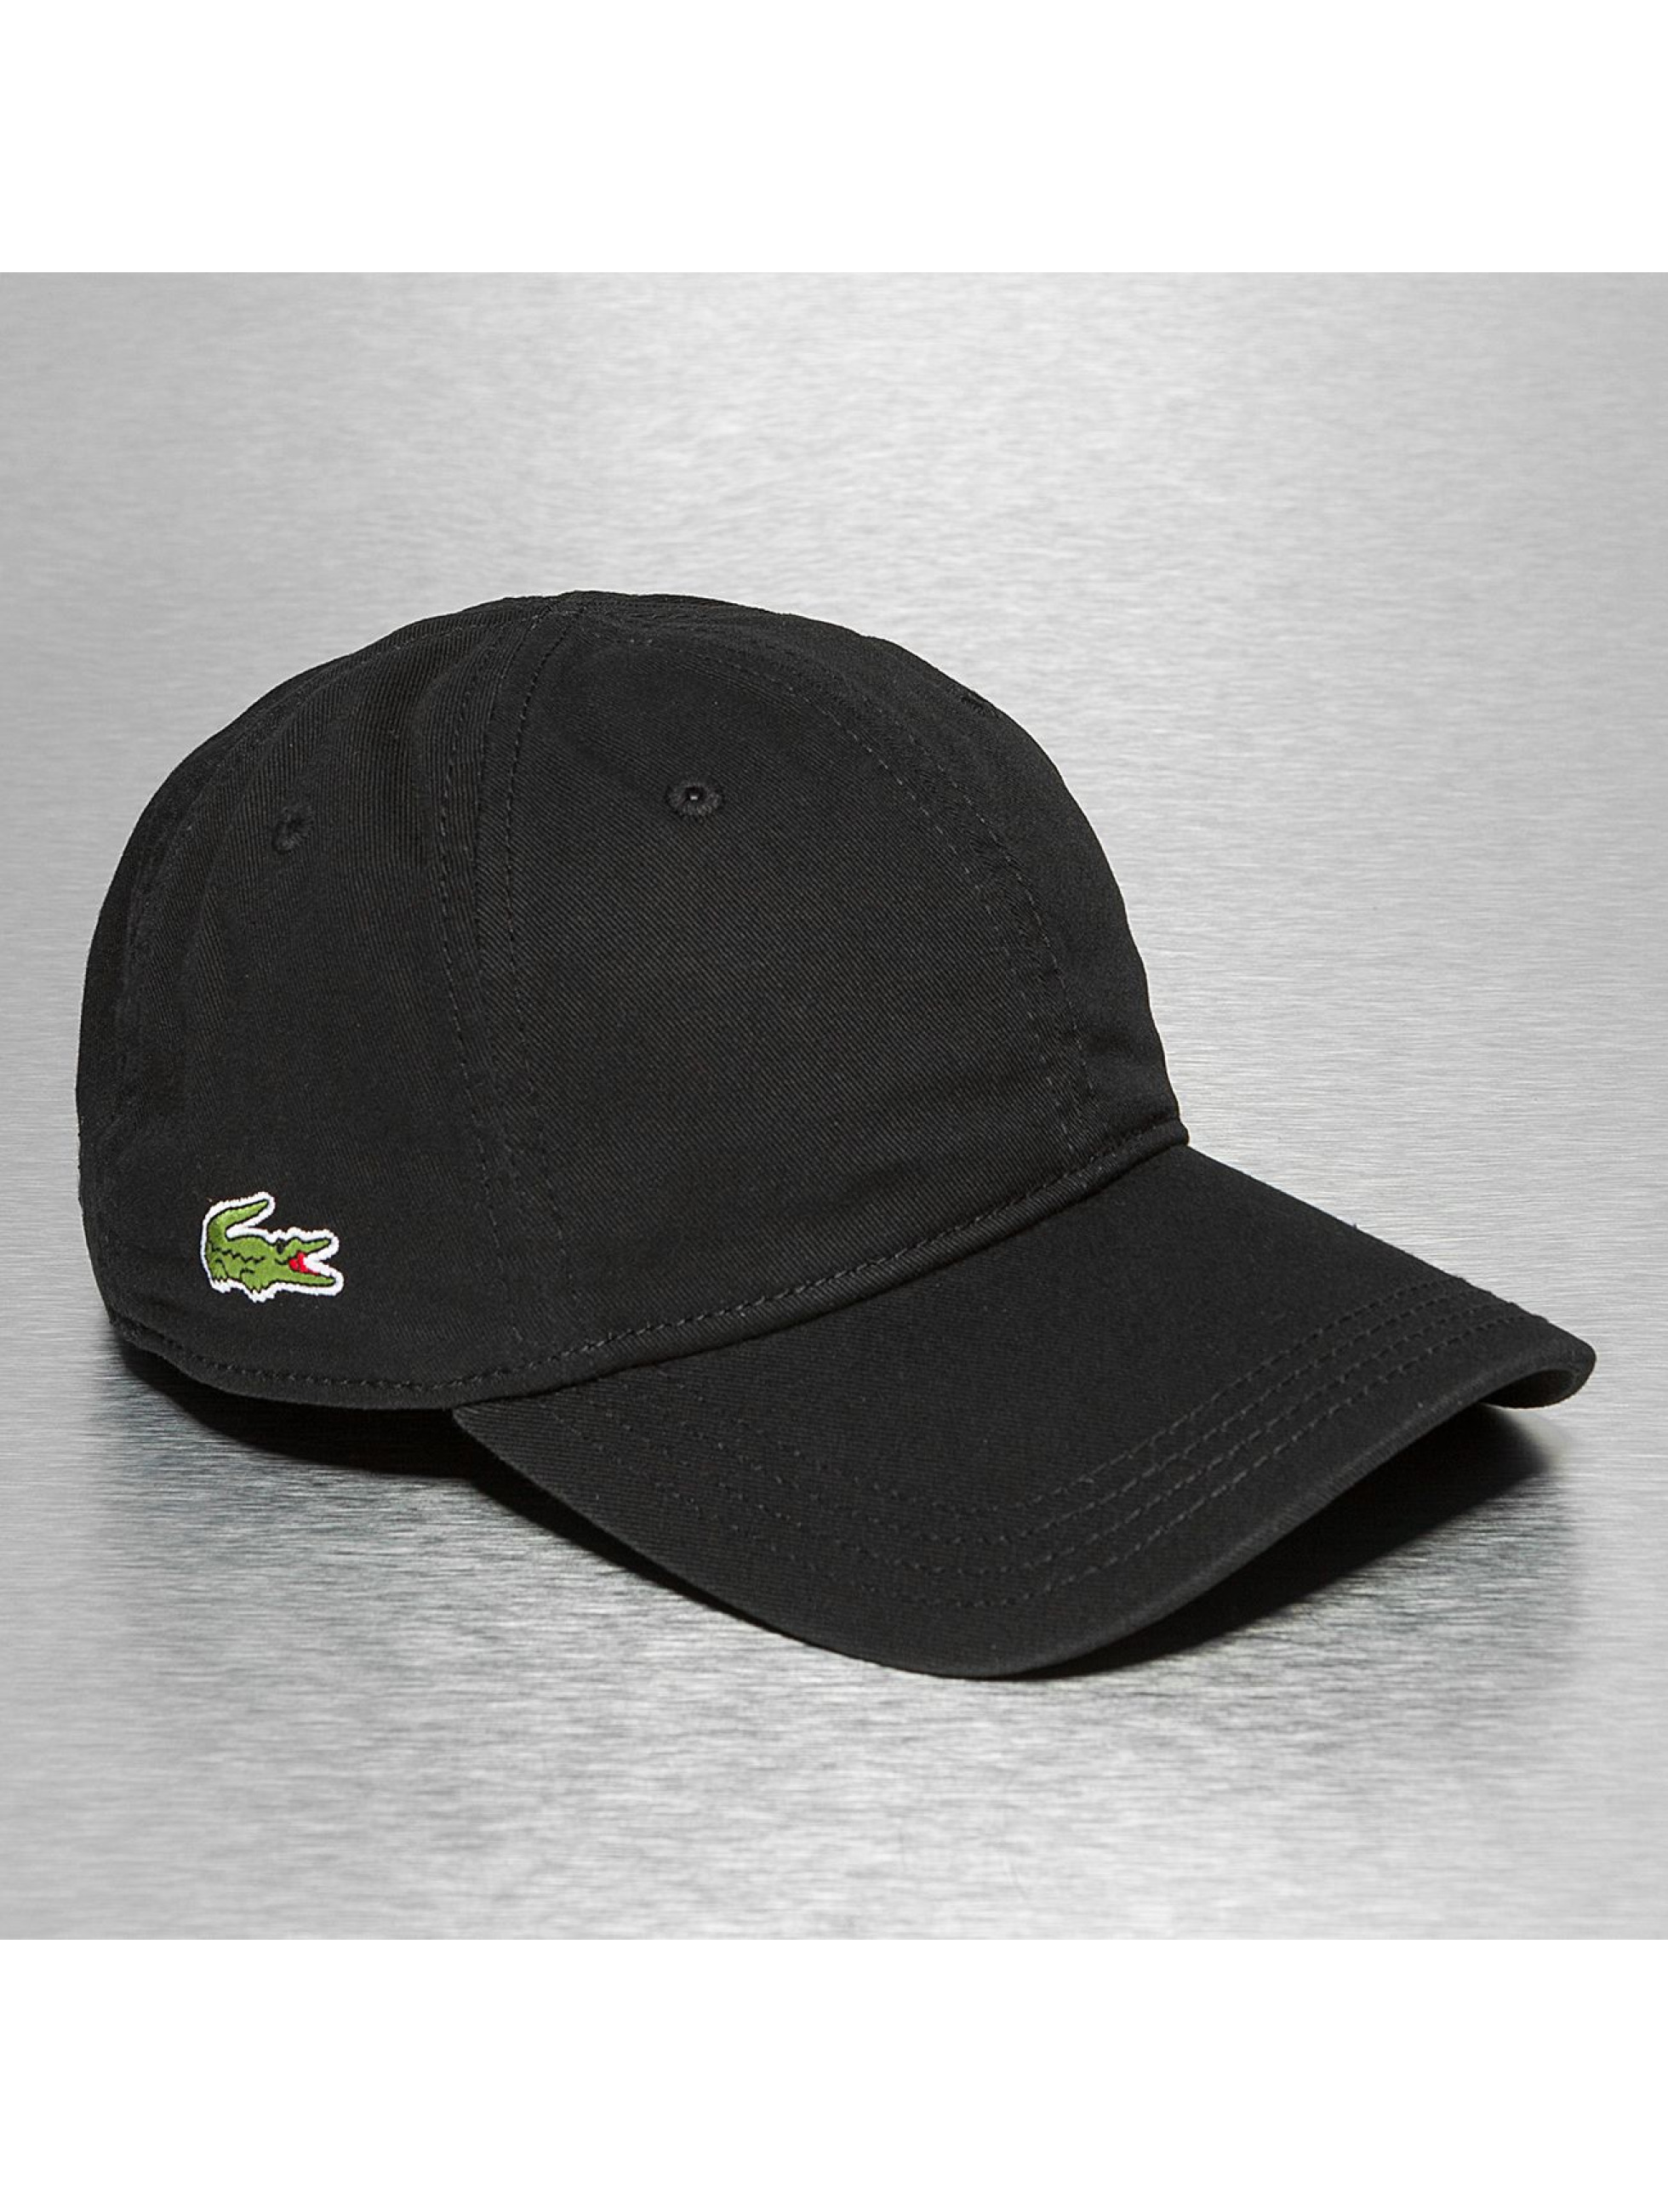 lacoste classic snapback cap gabardine croc strapback cap. Black Bedroom Furniture Sets. Home Design Ideas